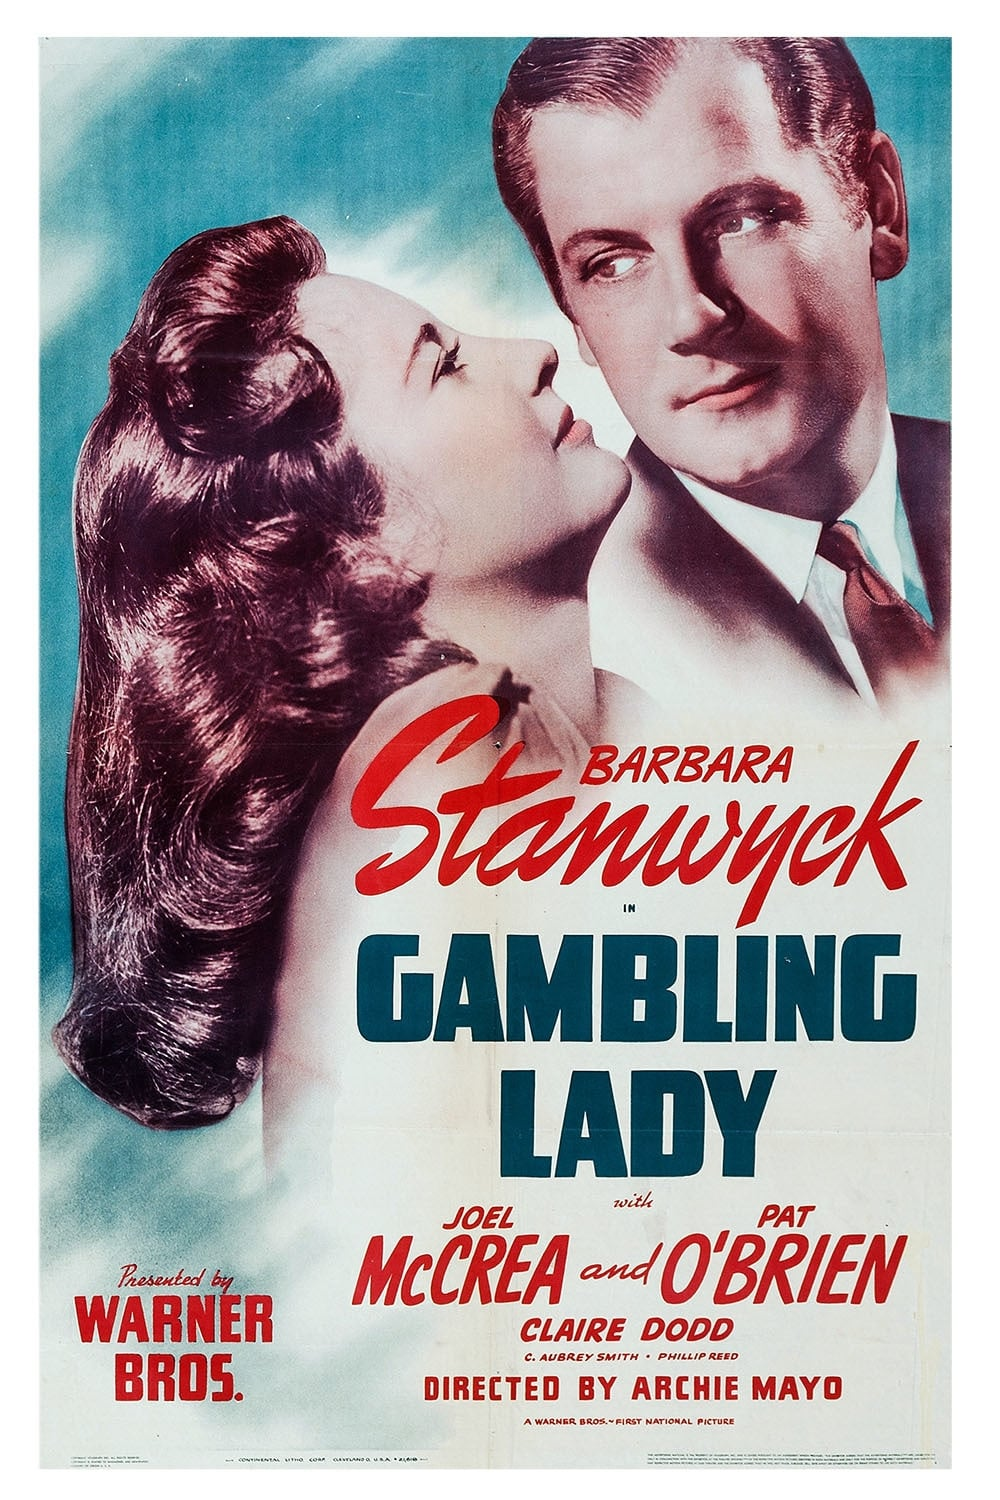 Gambling lady film minors accompanied by parents in casino bar las vegas